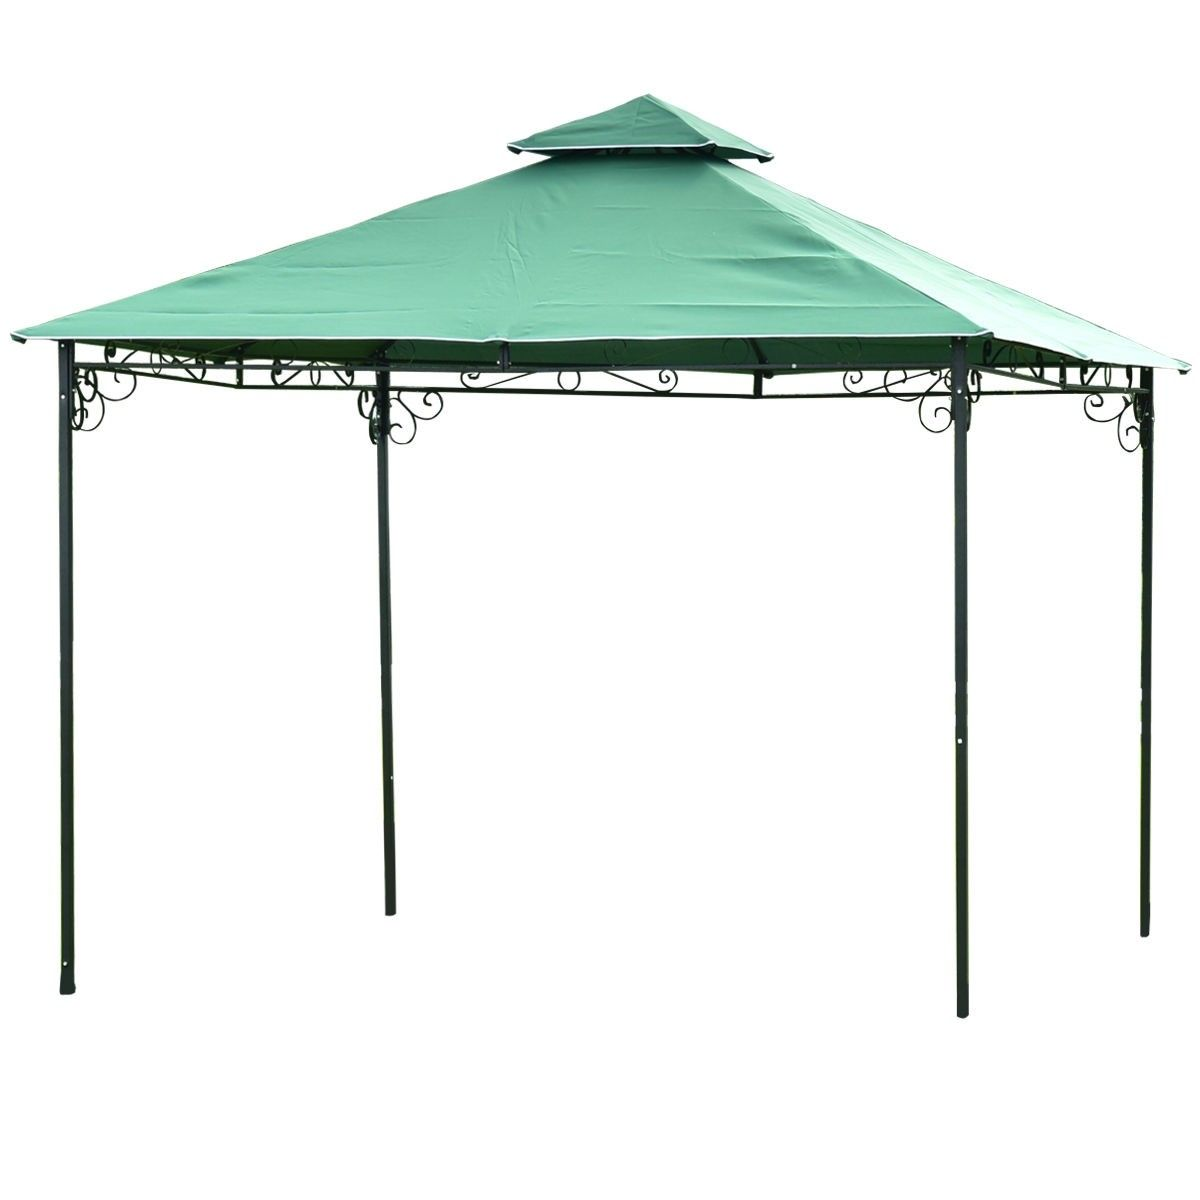 2 Tier 10 X 10 Patio Wedding Party Gazebo 81 95 Free Shipping Material Steel Polyester Fabric Color As The Pictures S Patio Wedding Party Gazebo Gazebo